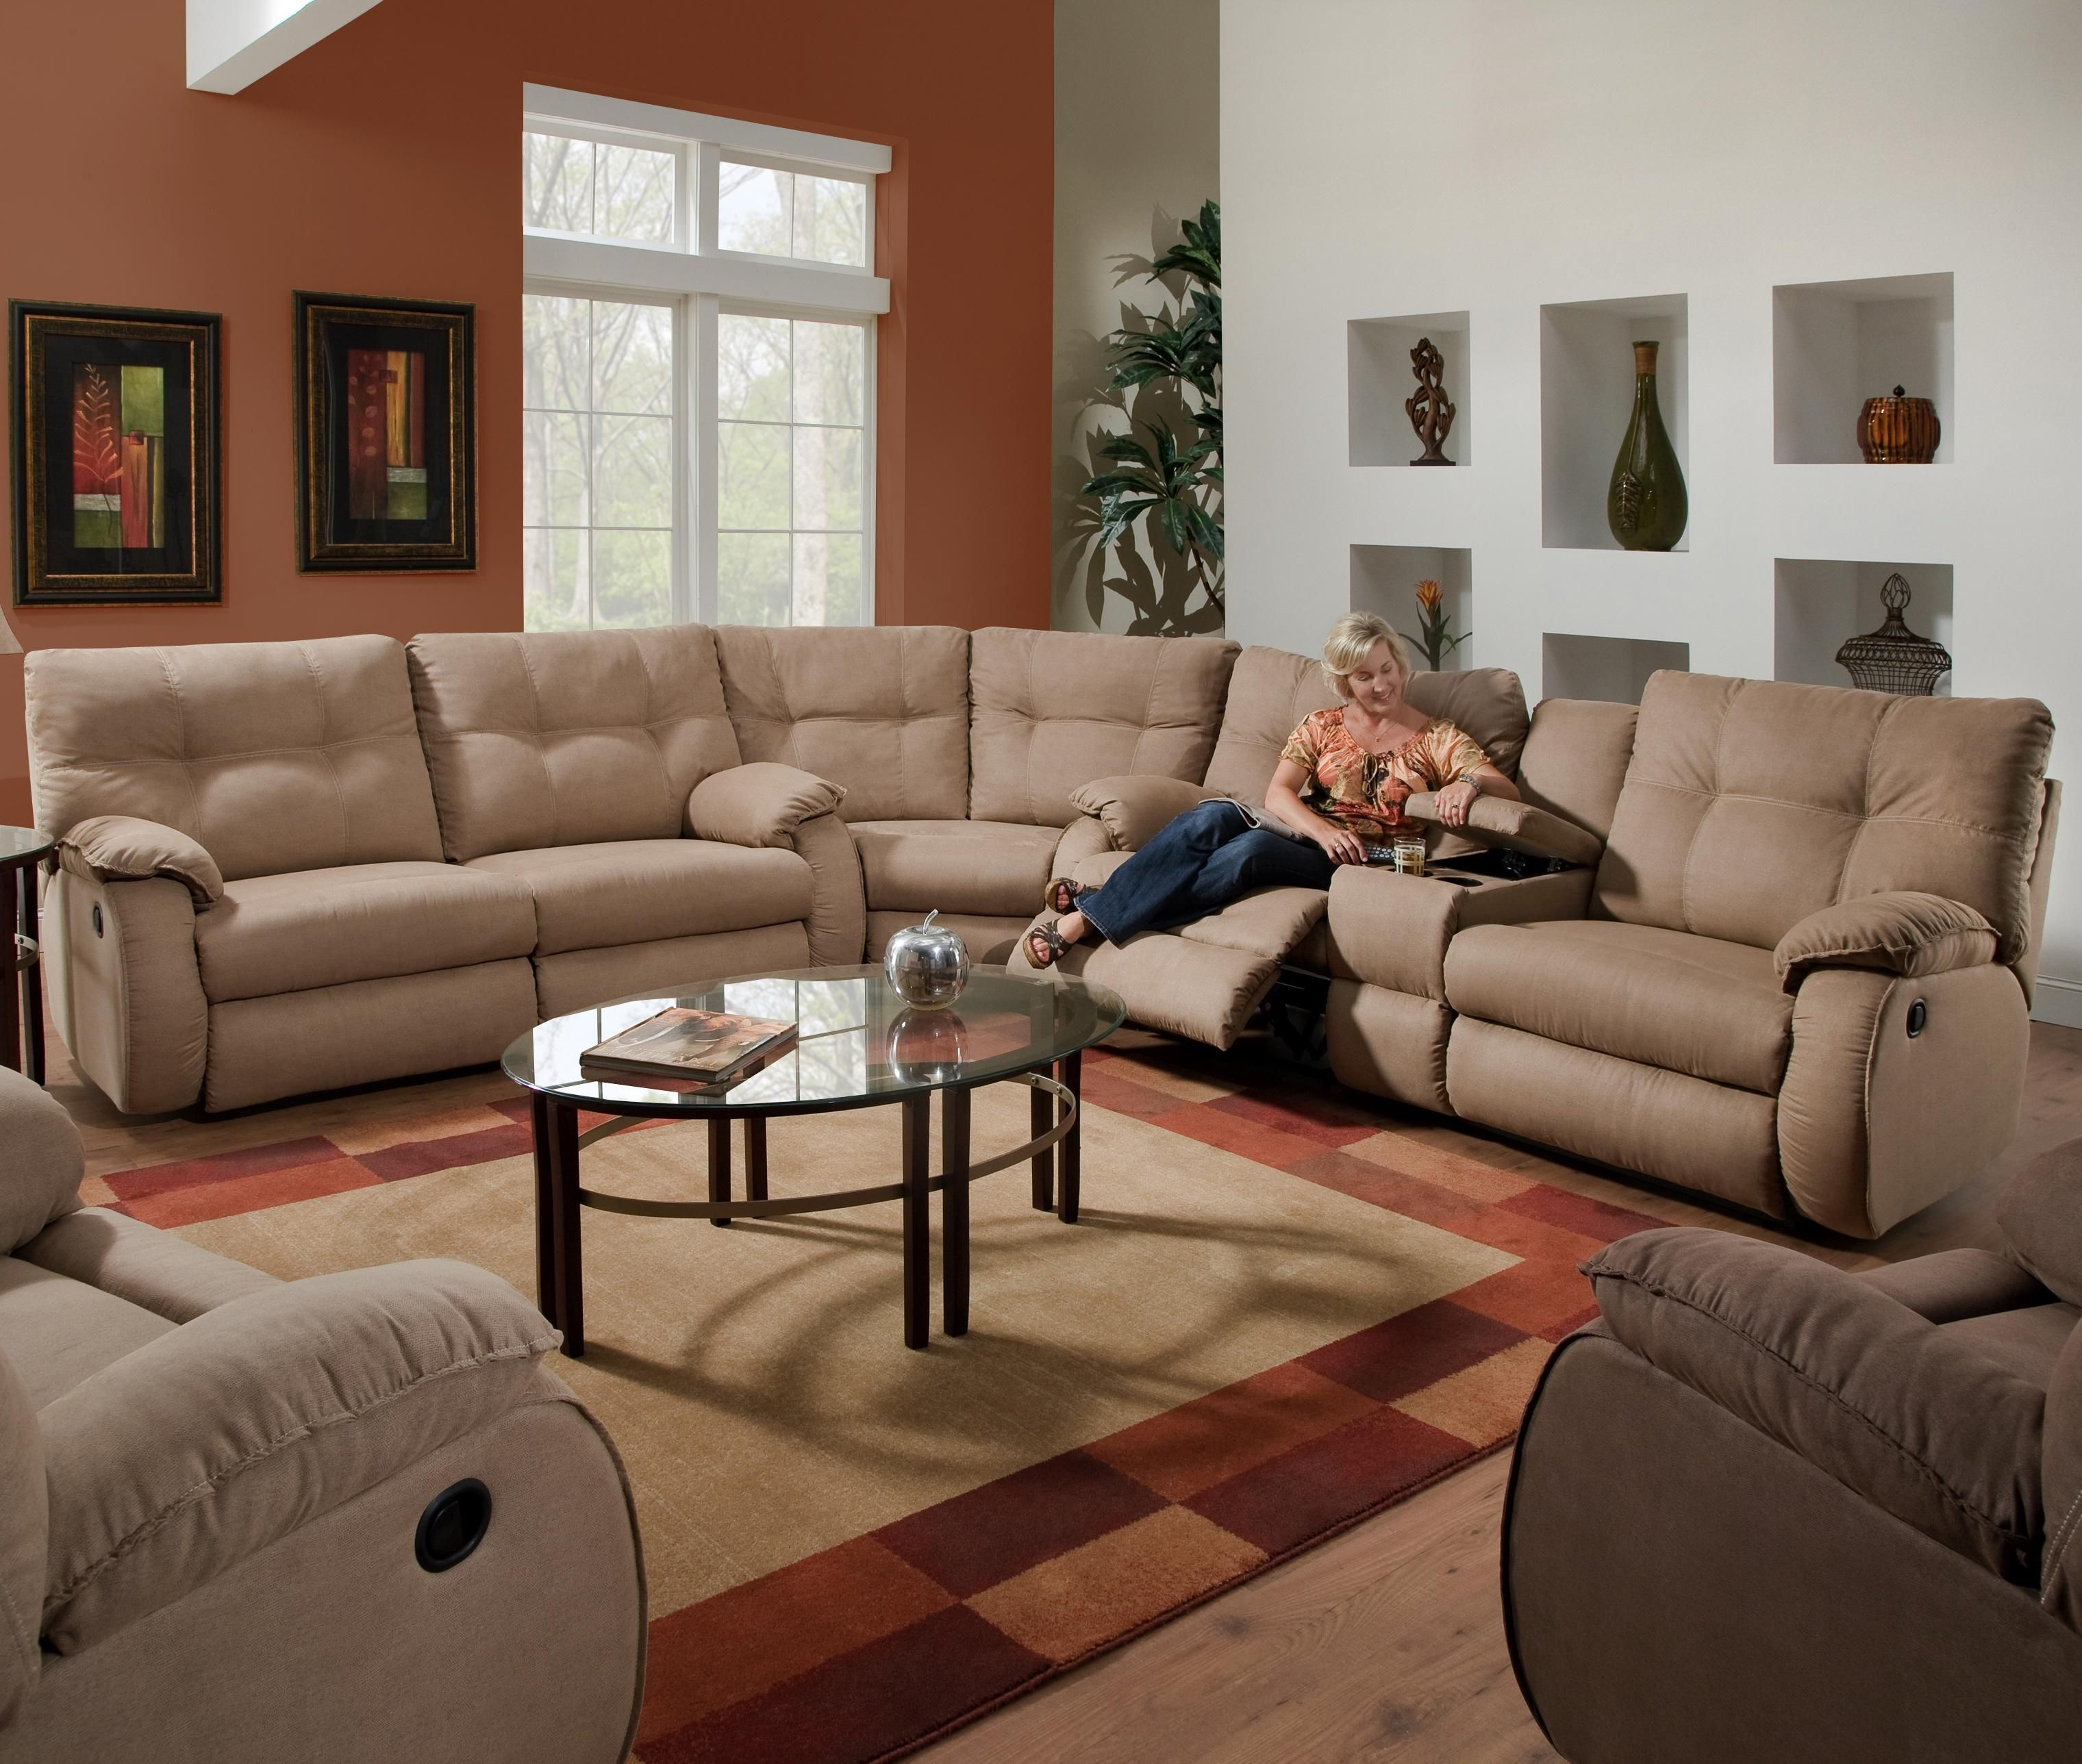 Dodger Reclining Sectional Sofa by Southern Motion | Home ...